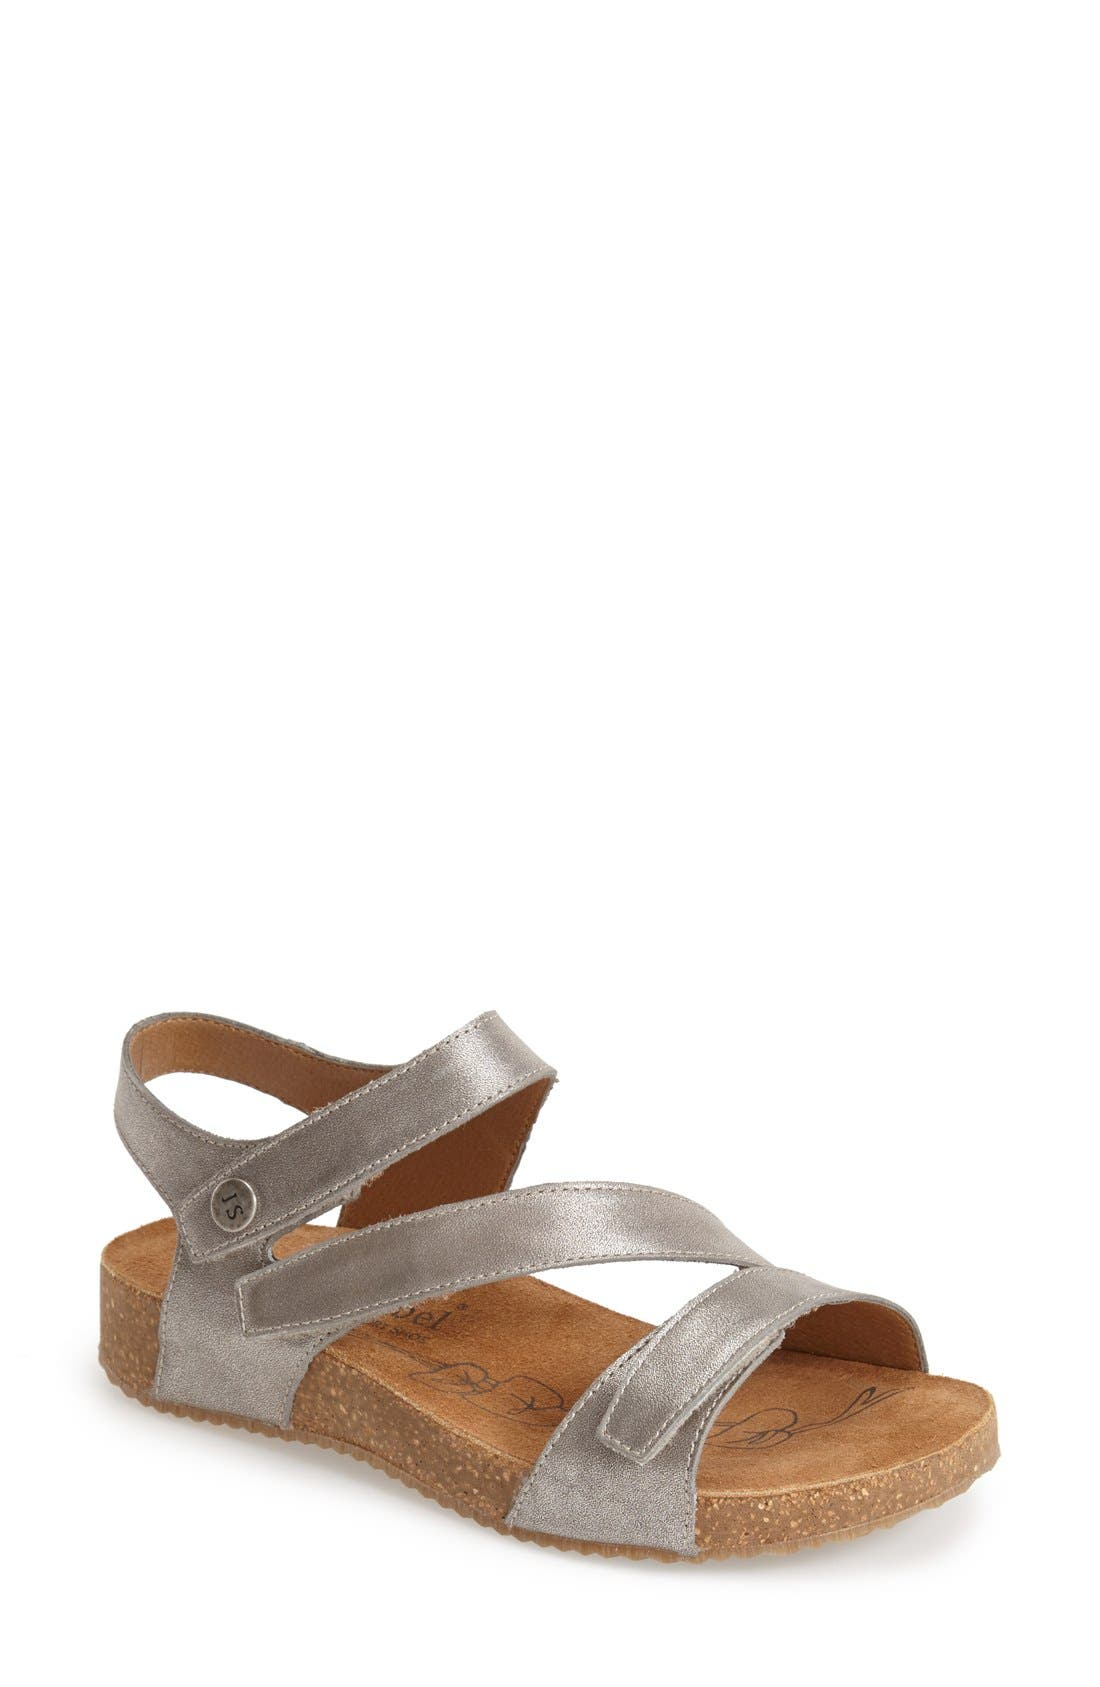 A trio of adjustable leather straps perfect the fit on a comfortable sandal shaped with a cushioned, anatomic footbed and supported by a springy cork platform. Style Name: Josef Seibel \\\'Tonga\\\' Leather Sandal (Women). Style Number: 865413 1. Available in stores.